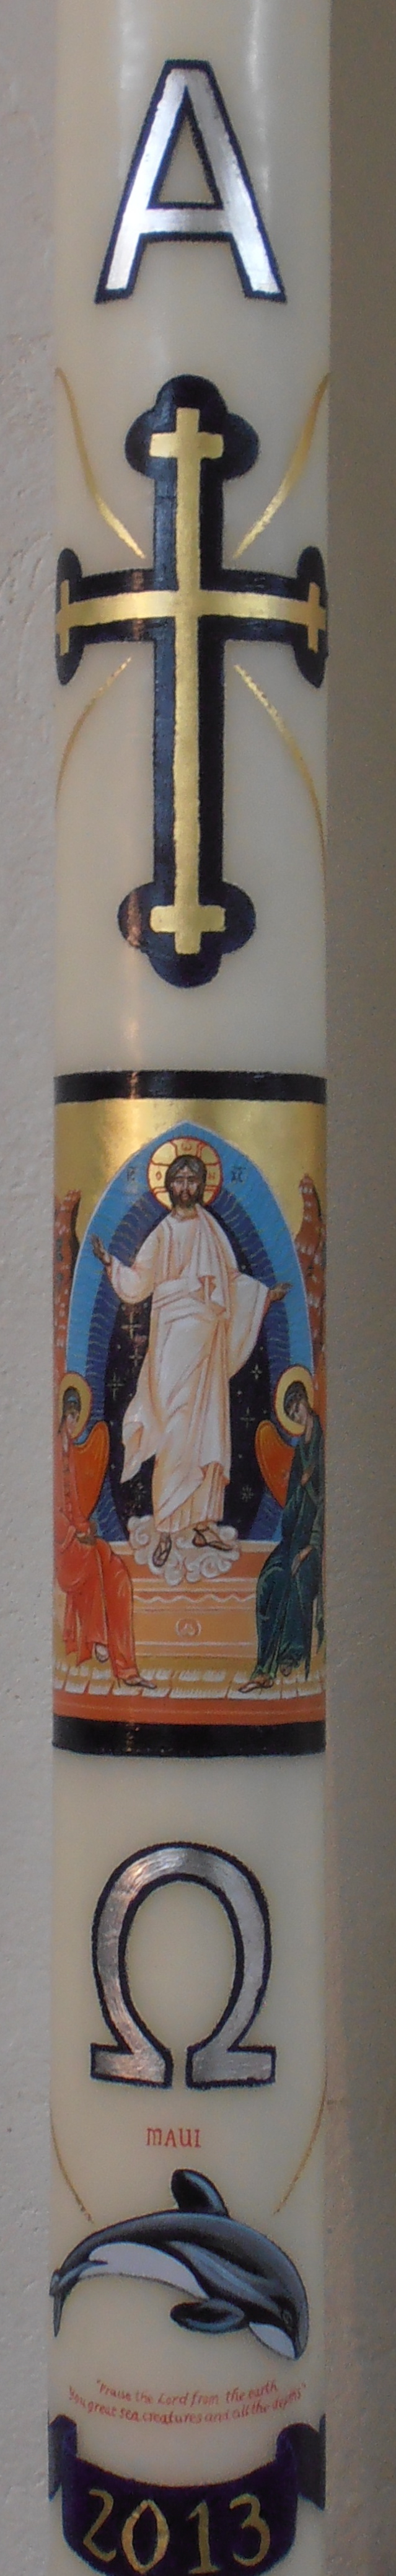 Paschal Candle. Saint Paul's Cathedral, London 2013.